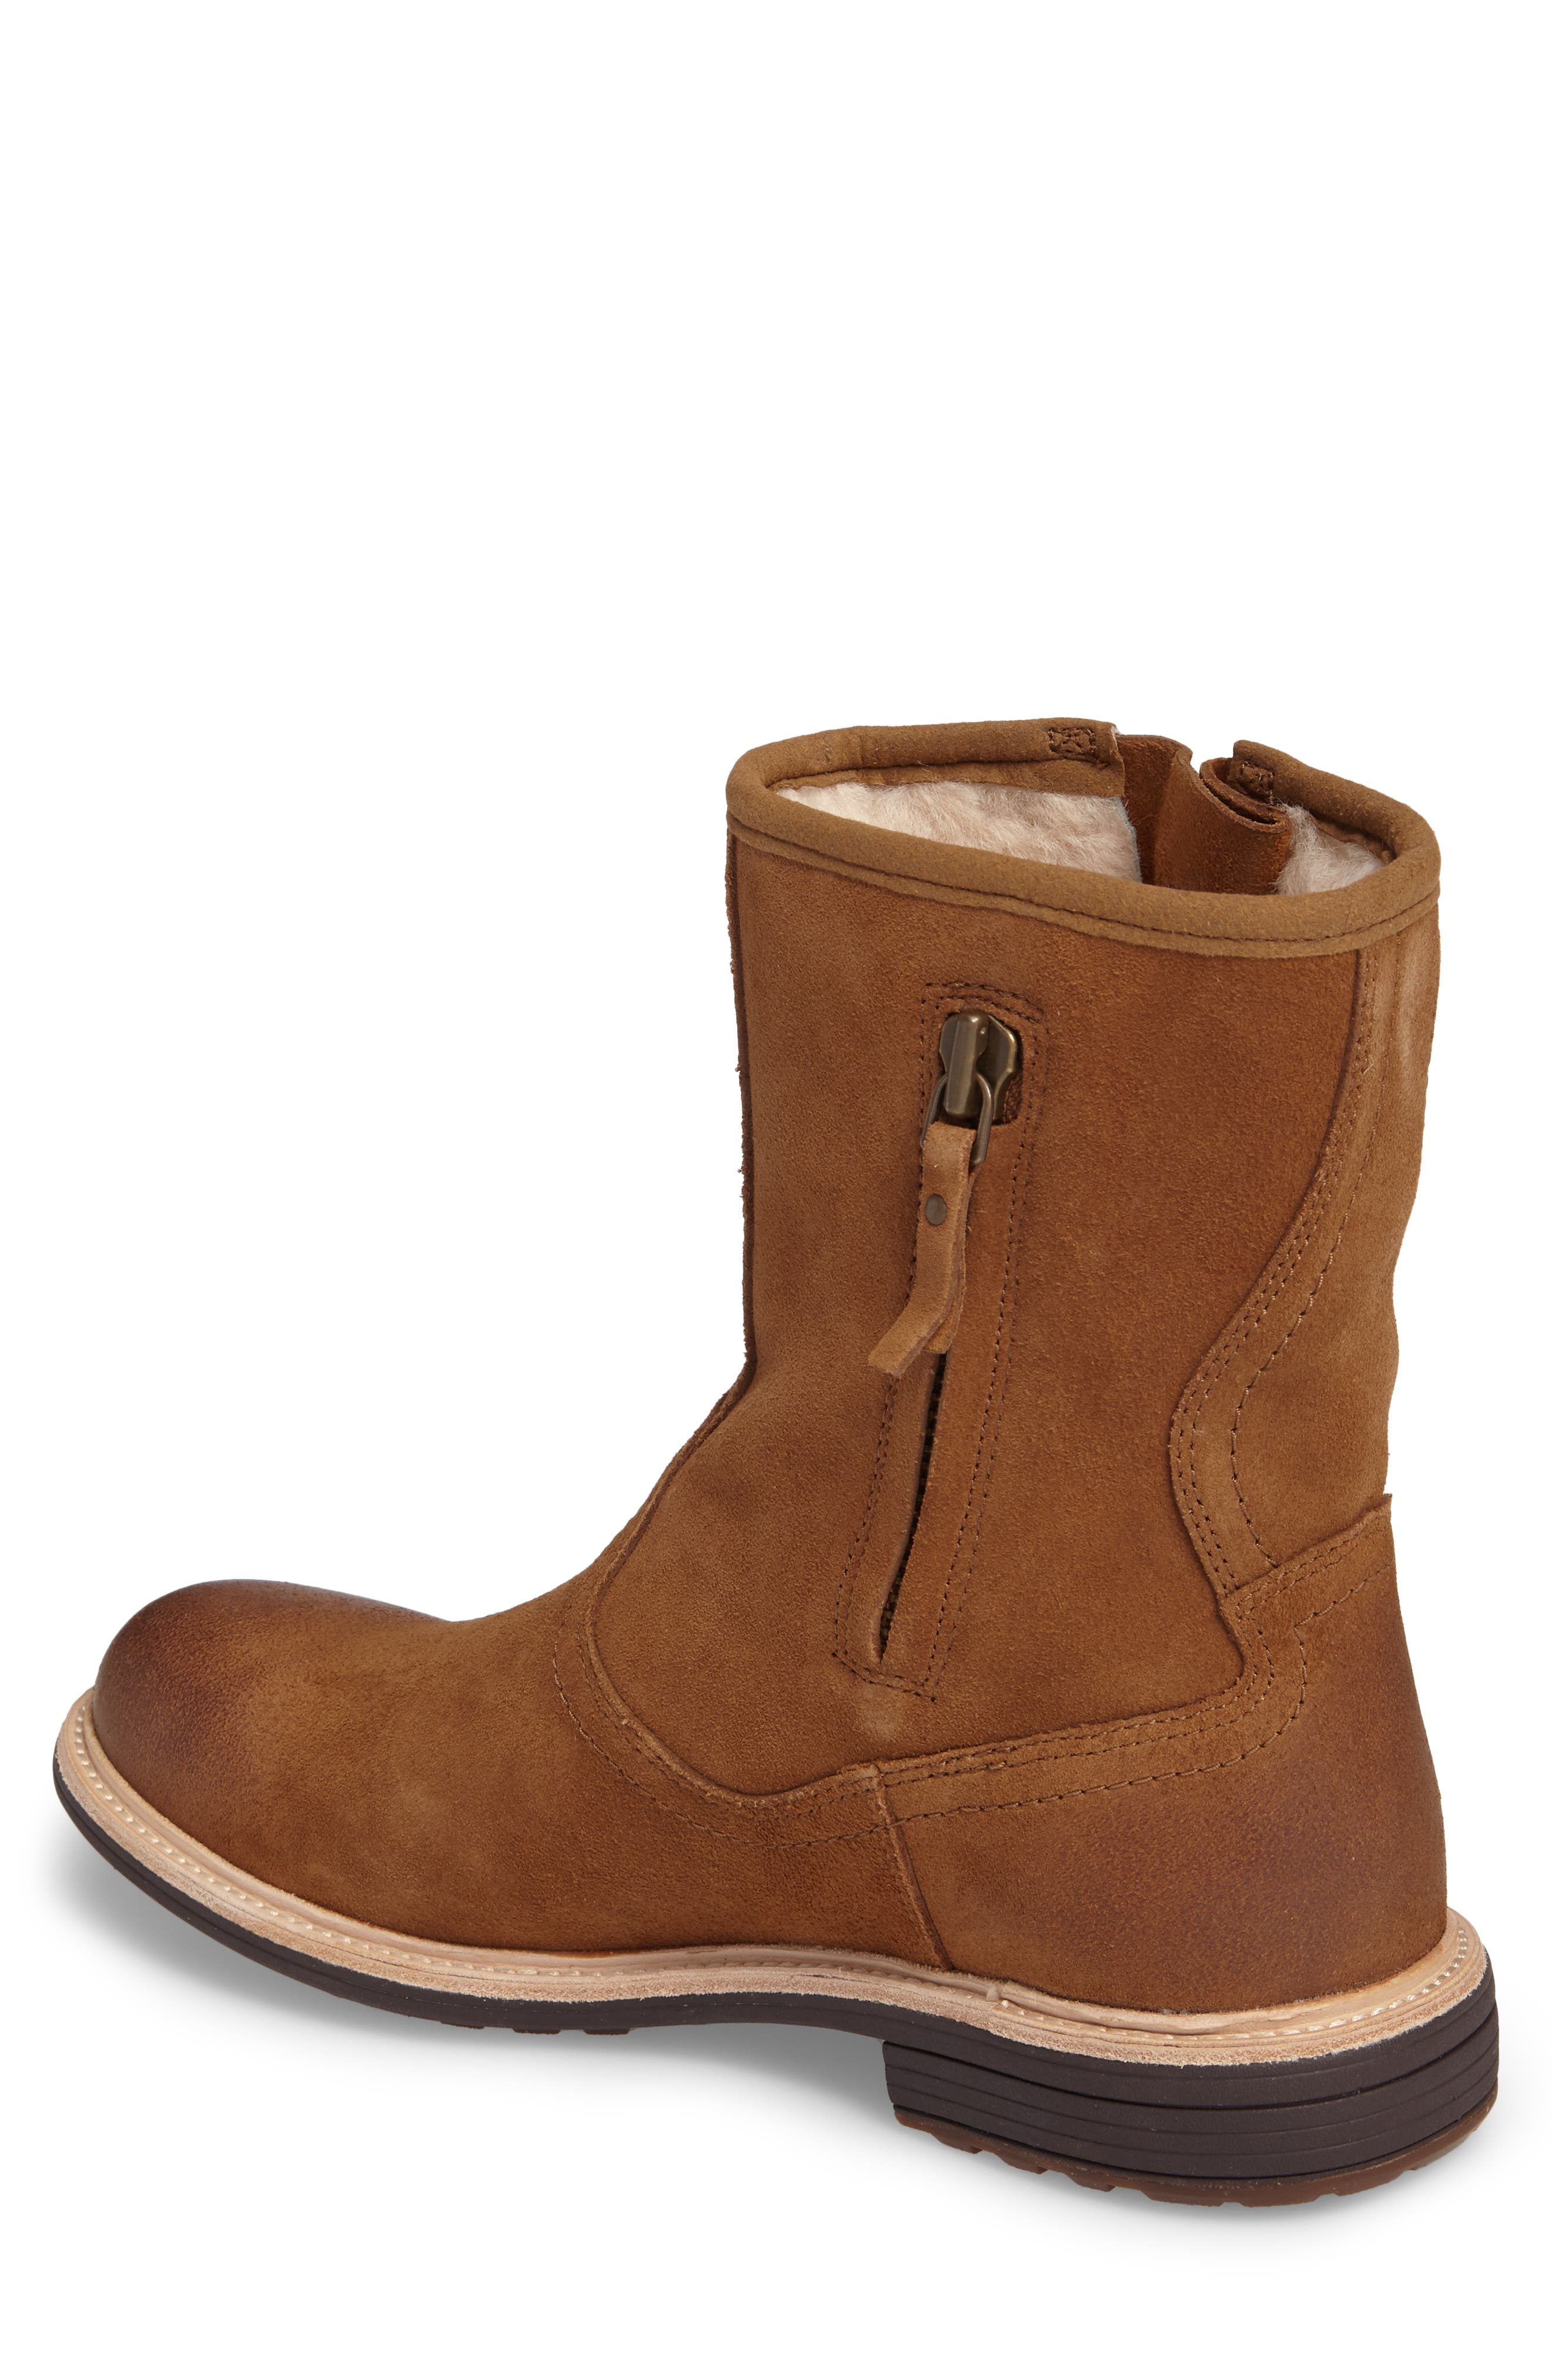 Jaren Zip Boot with Genuine Shearling,                             Alternate thumbnail 2, color,                             Chestnut